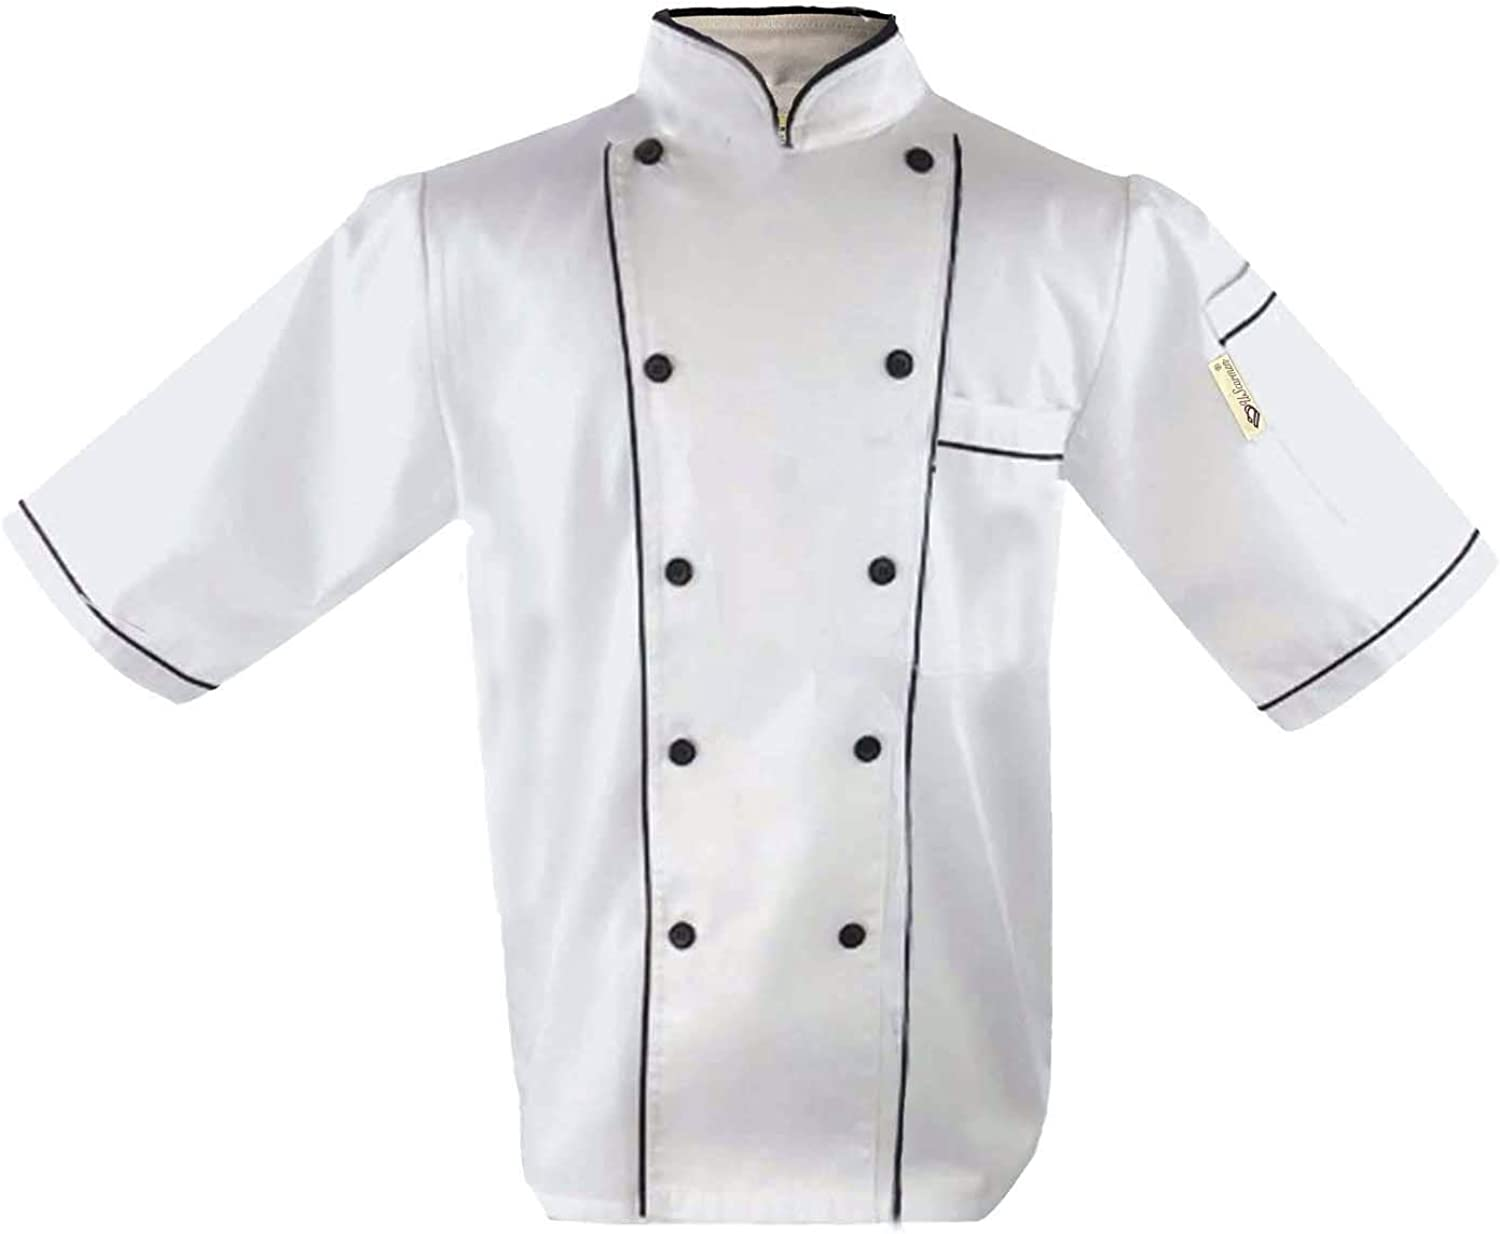 Uniform Chef Coat Unisex Short Sleeve Catering Jackets for Food Staff or Chef Tie